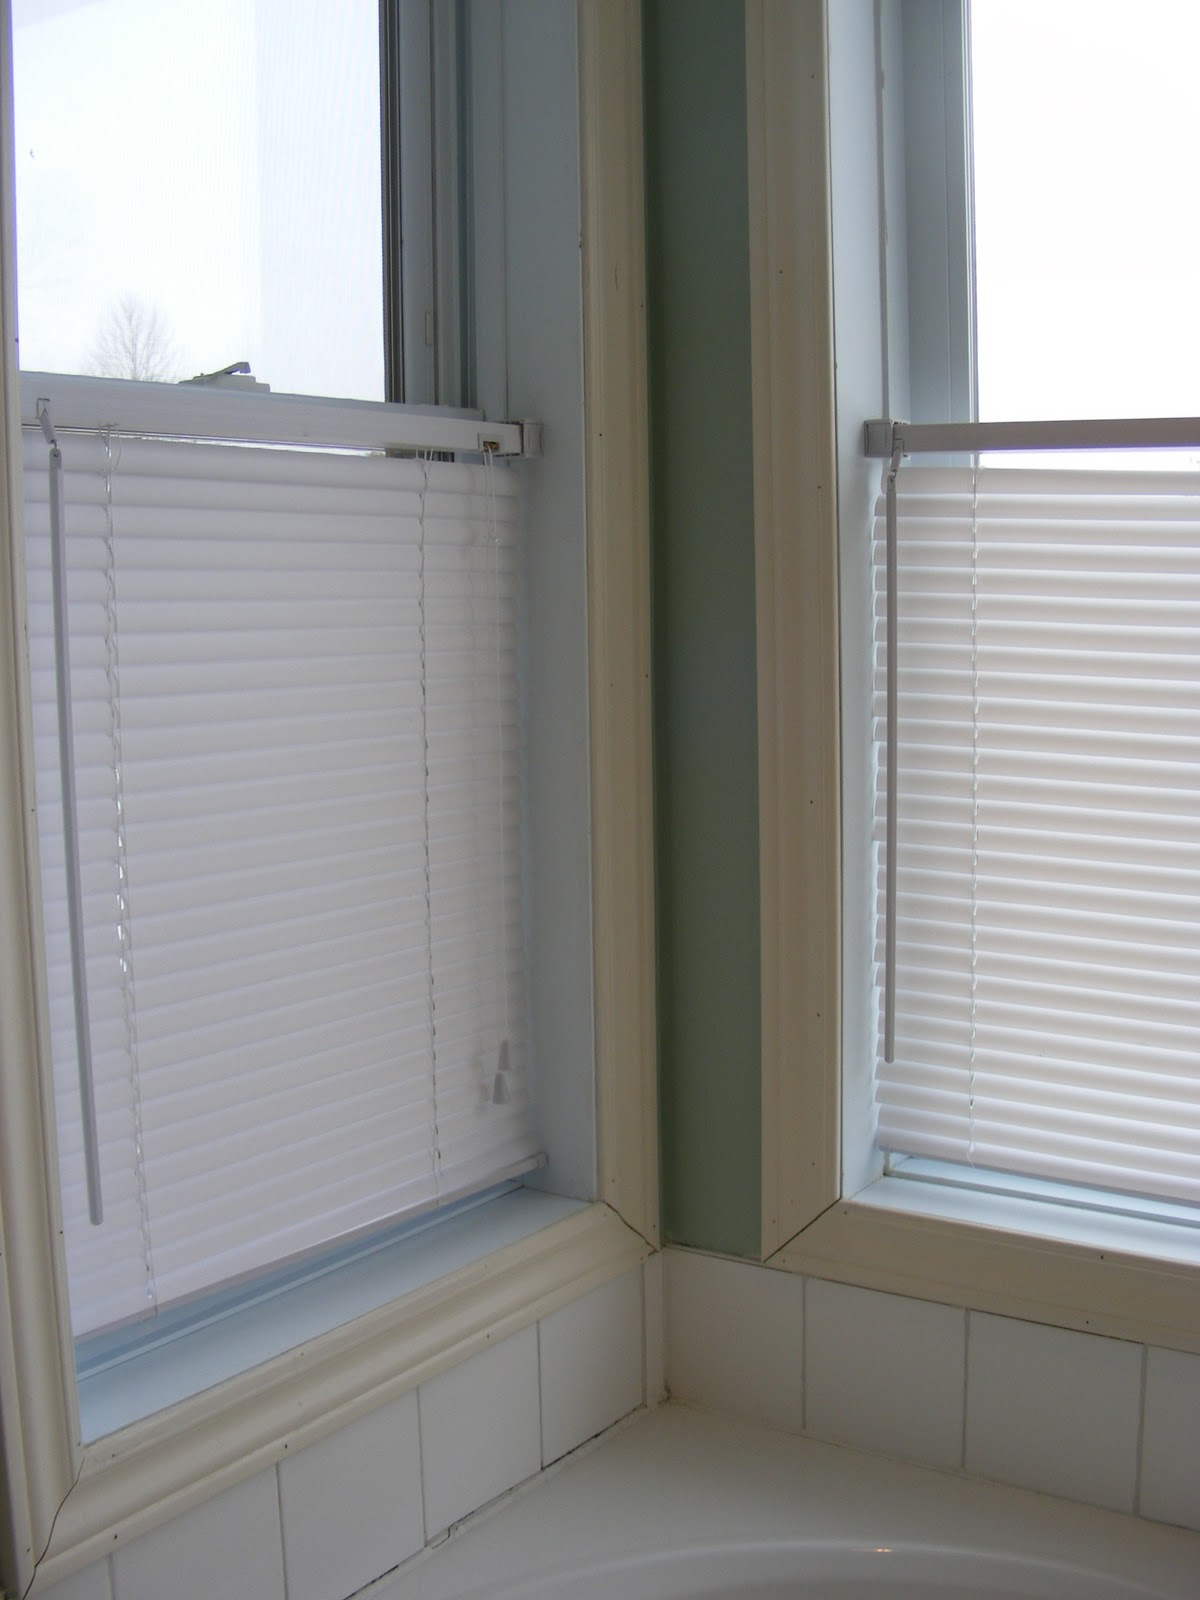 Cleaning Mini Blinds The Complete Guide To Imperfect